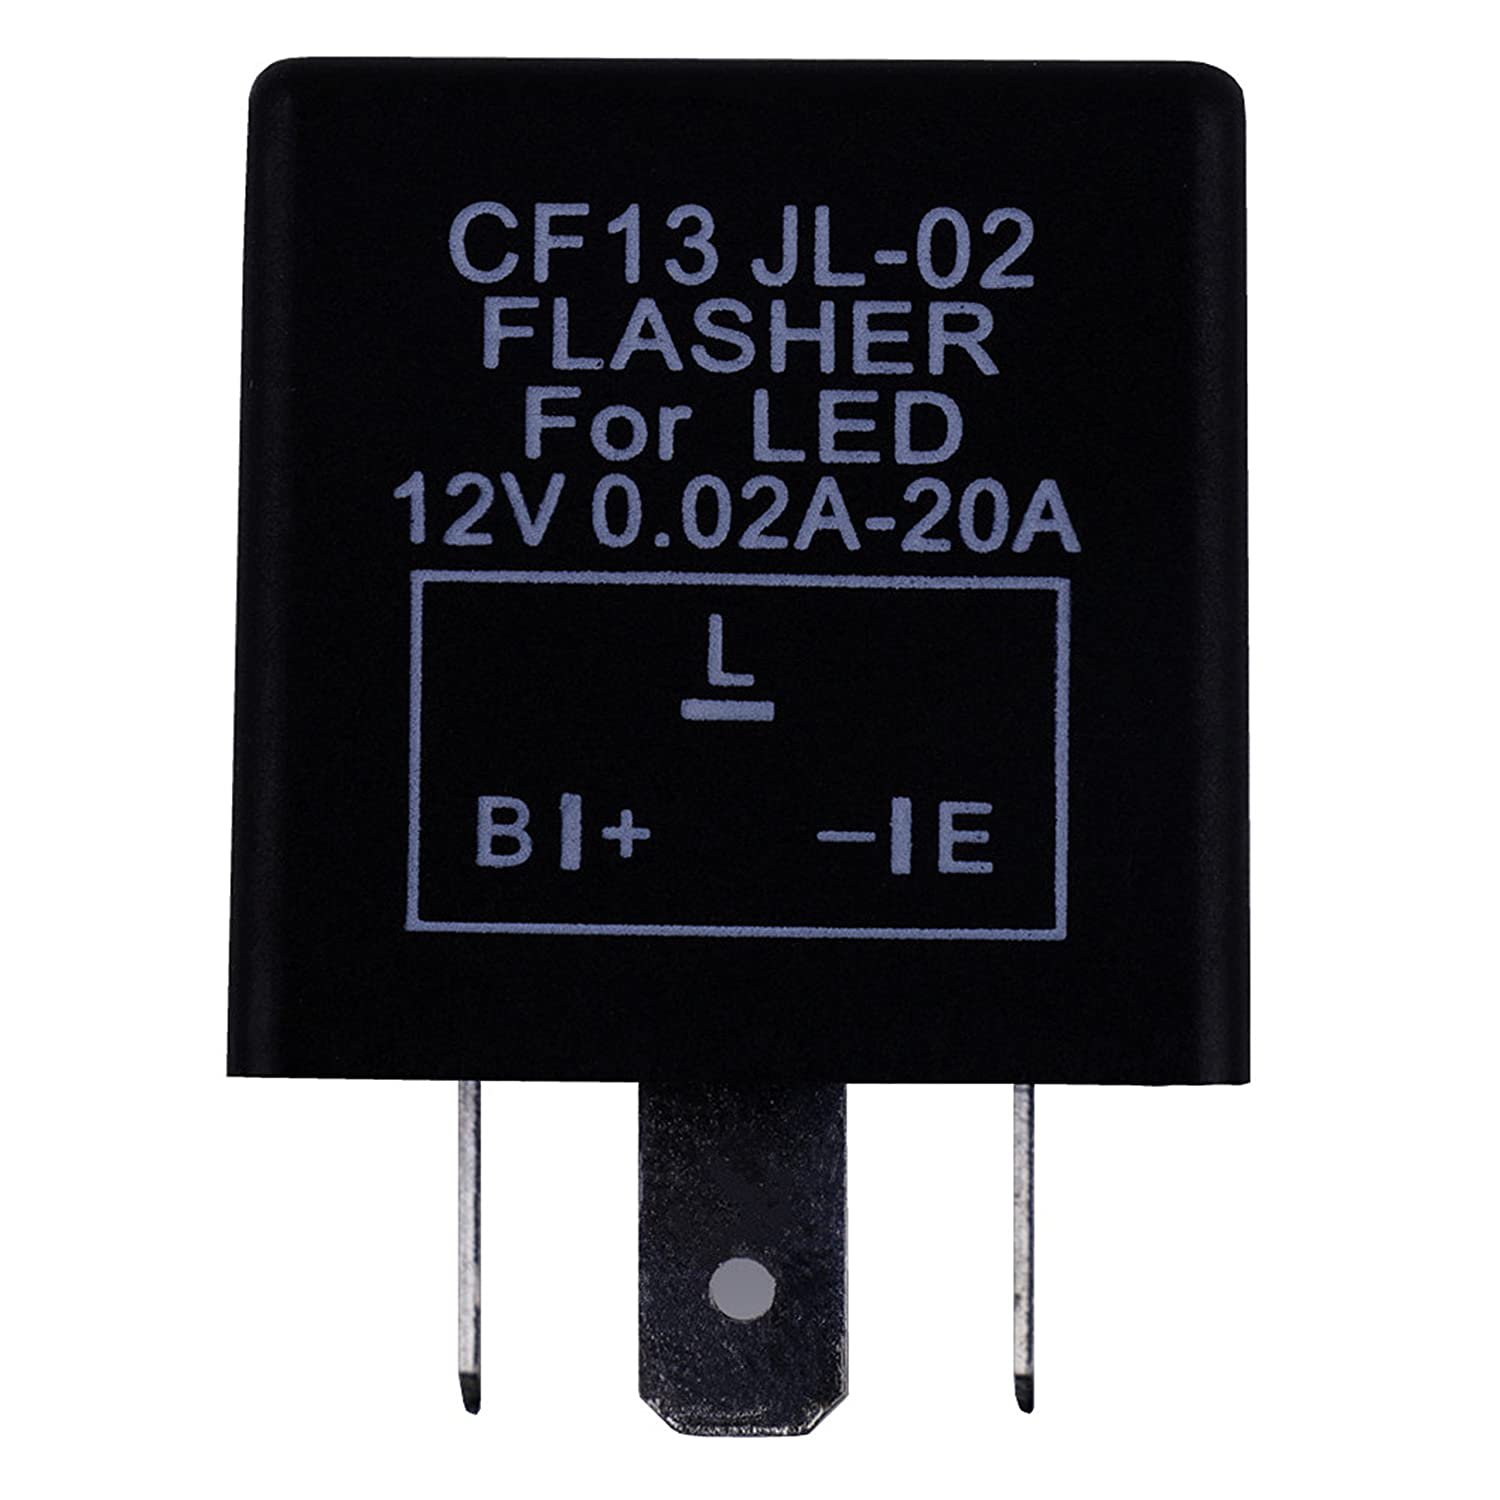 Labbyway 3 Pin Cf13 Electronic Led Flasher Relay For This Give Similar Circuit With The Previous Transistor Related Turn Signal Light Fix Blinker Bulbs Automotive